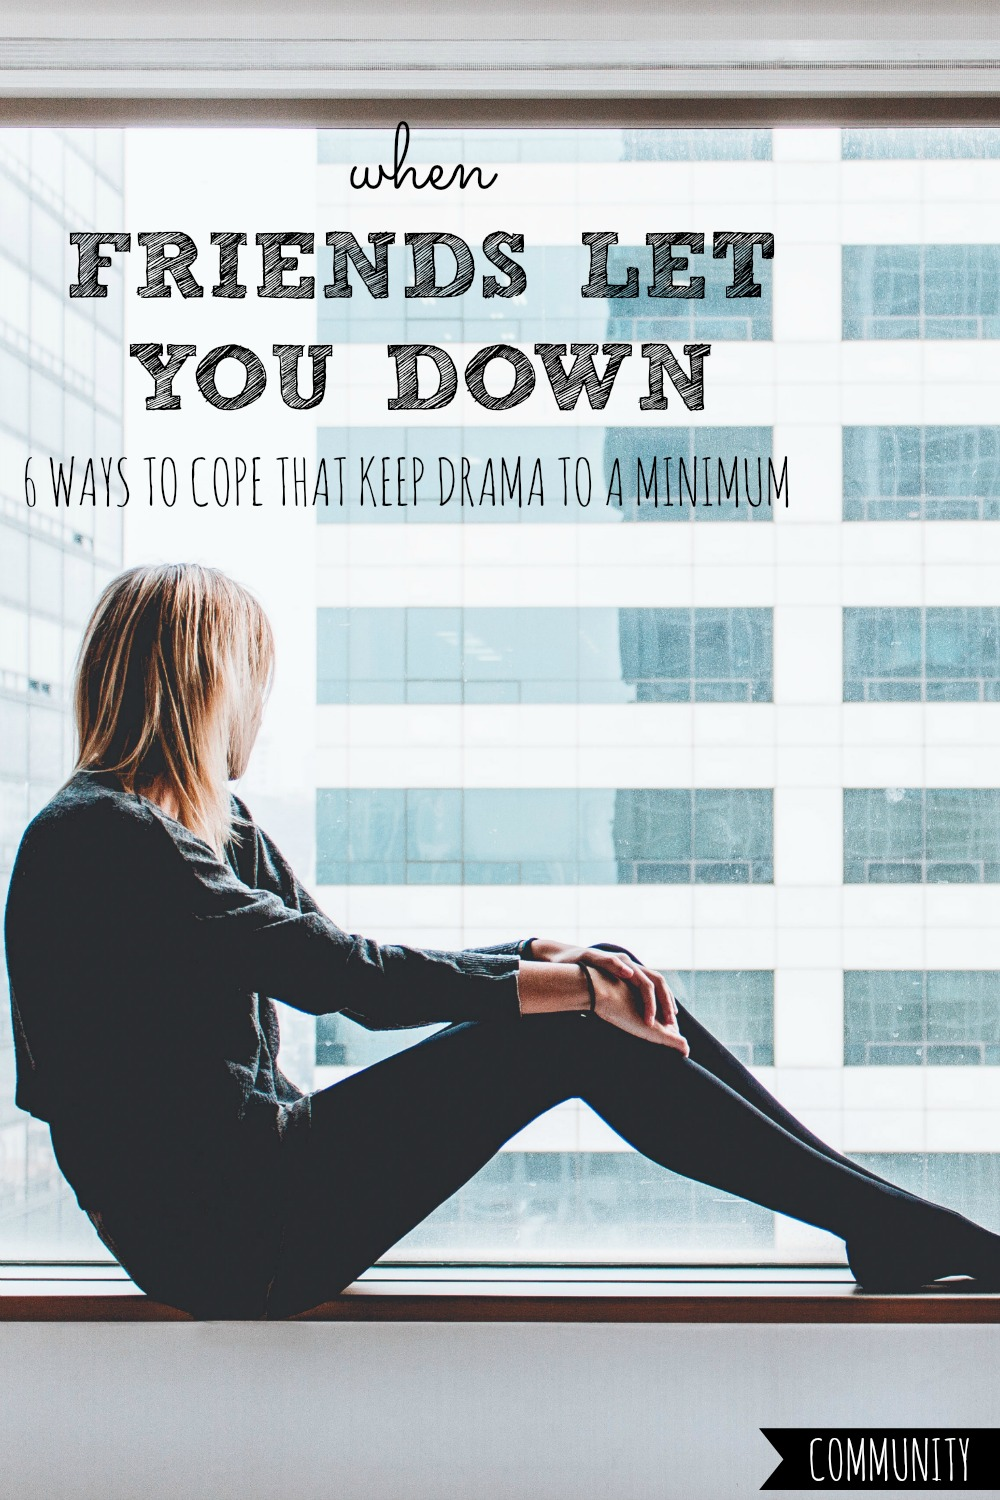 Ever feel like your friends let you down? Here are six ways to cope that will keep drama to a minimum and put you back in the driver's seat TODAY! #friends #let #you #down #friend #letdown #disappoint #disappointment #disappointments #disappointed #disappointing #friendship #friendships #cope #coping #skill #drama #take #personal #personally #control #new